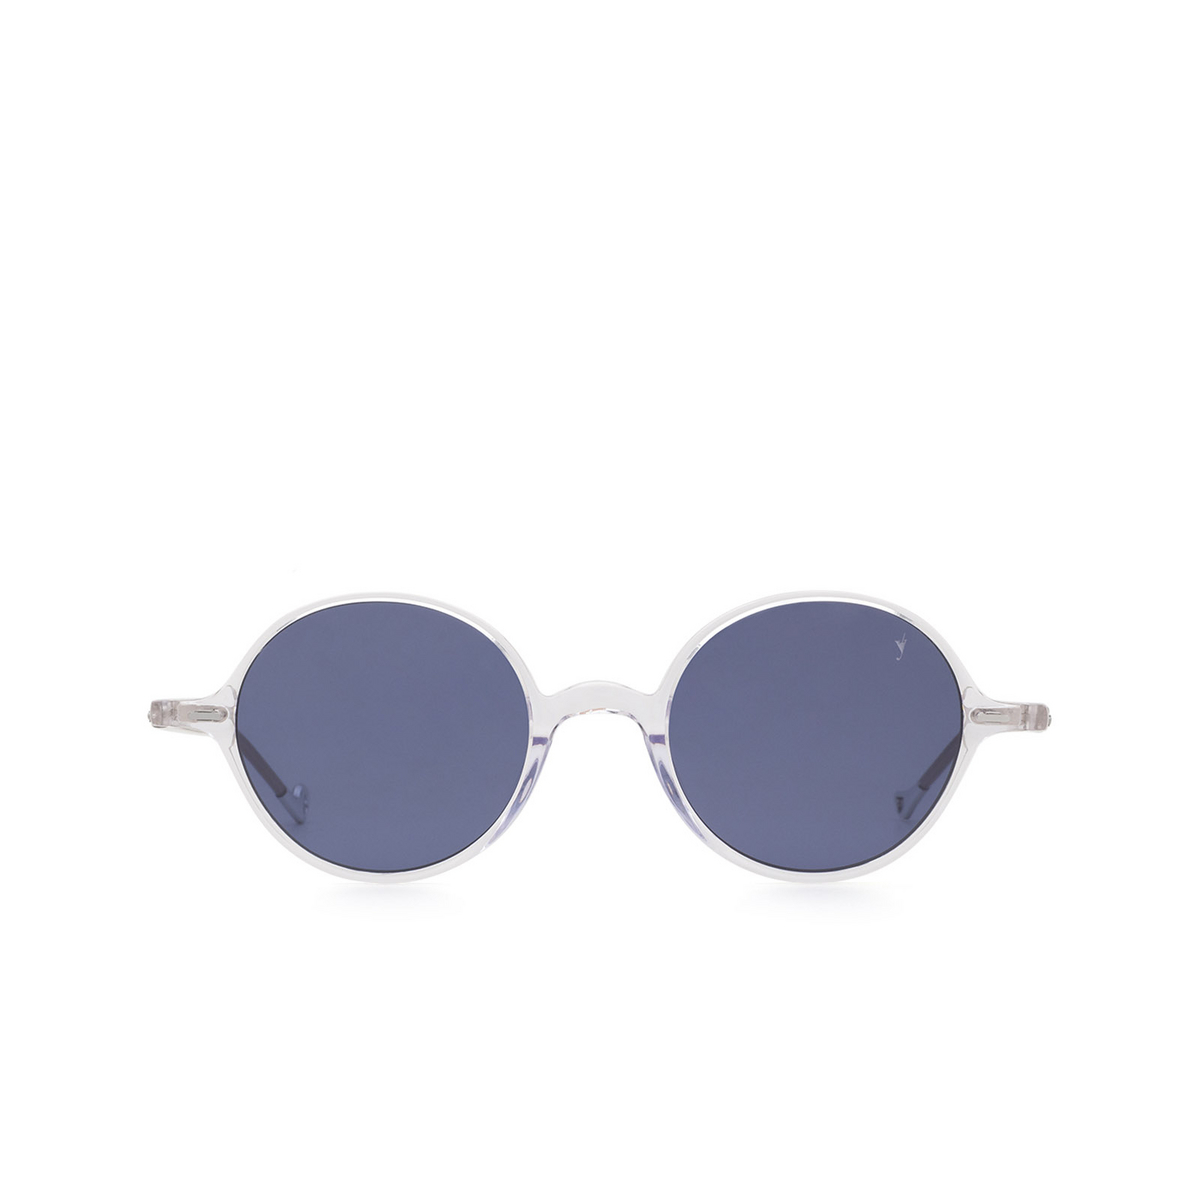 Eyepetizer® Round Sunglasses: Pallavicini color Crystal C.Y-39 - front view.